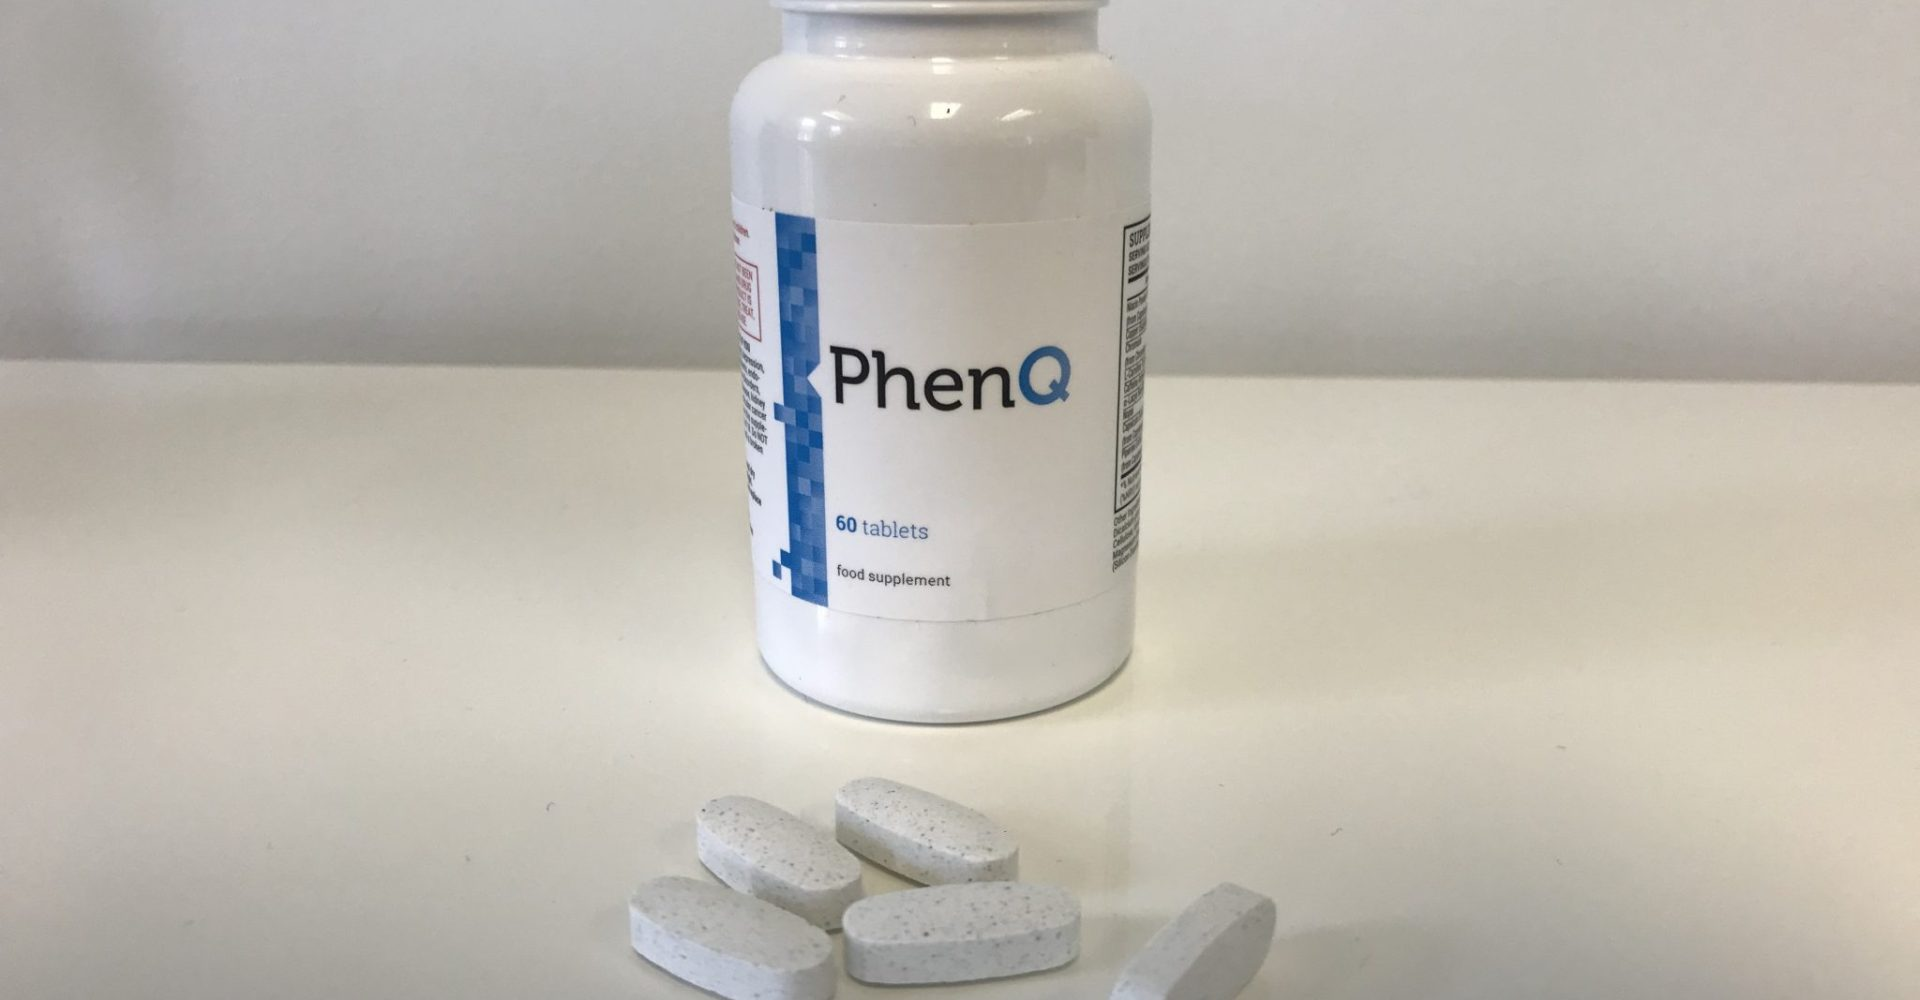 PhenQ is available in France